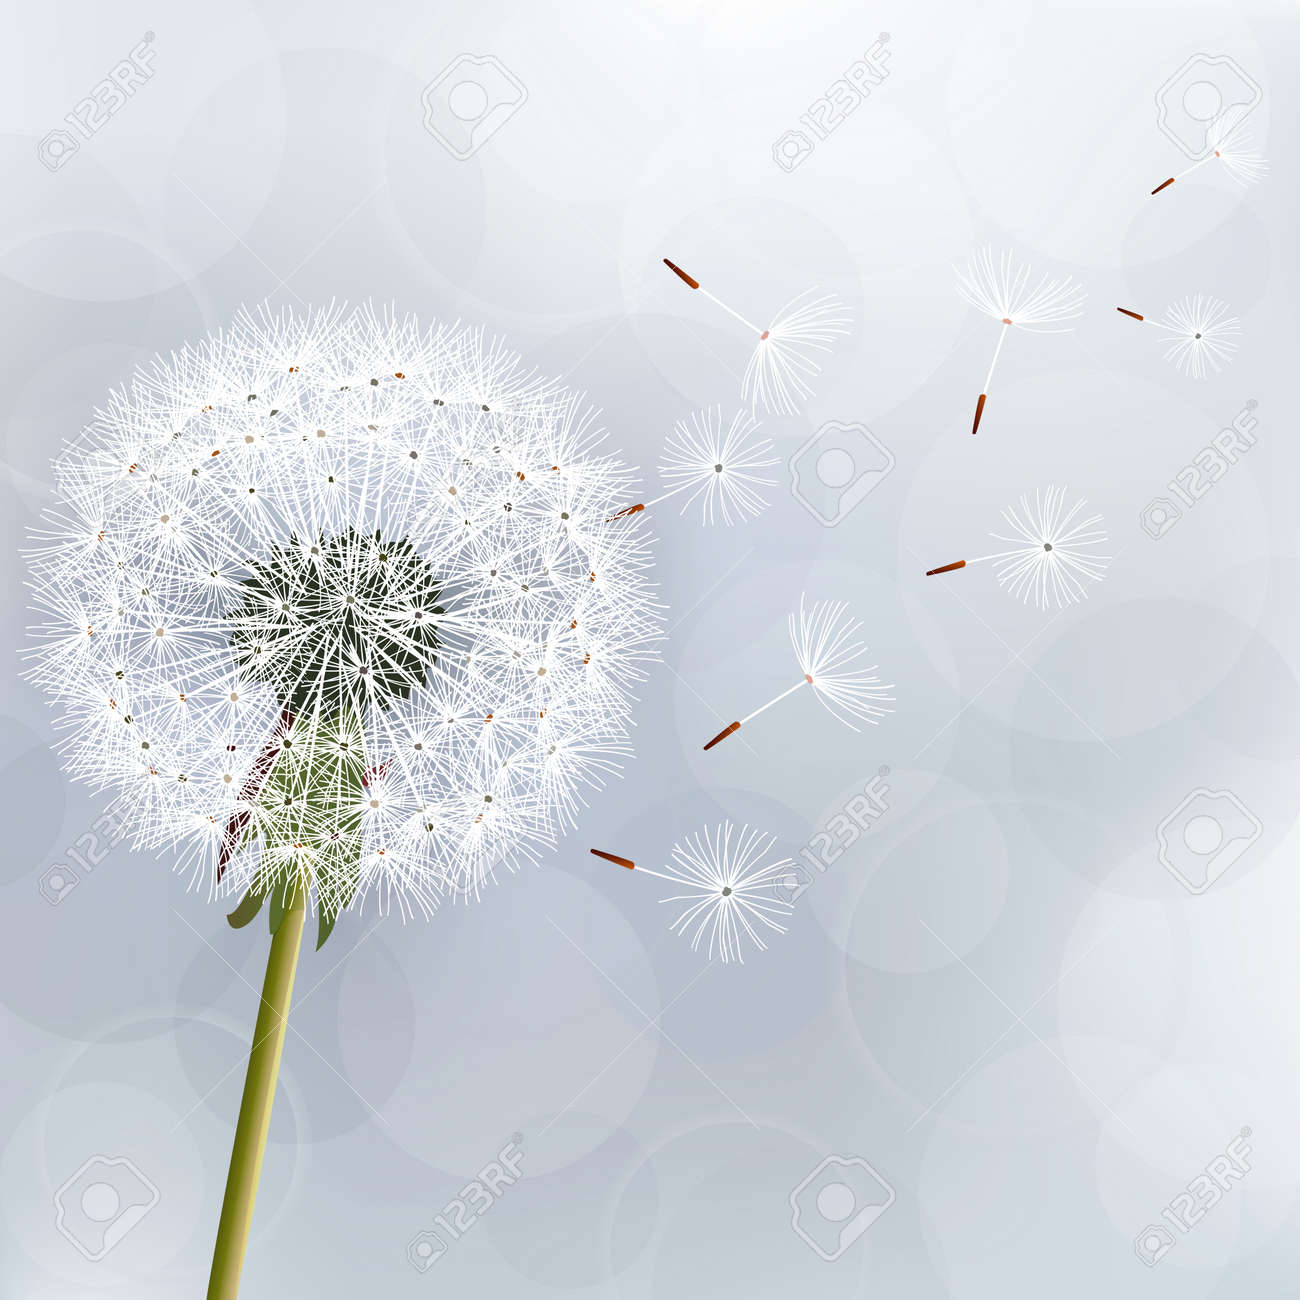 Floral trendy background with flower dandelion Beautiful nature wallpaper - 23241333